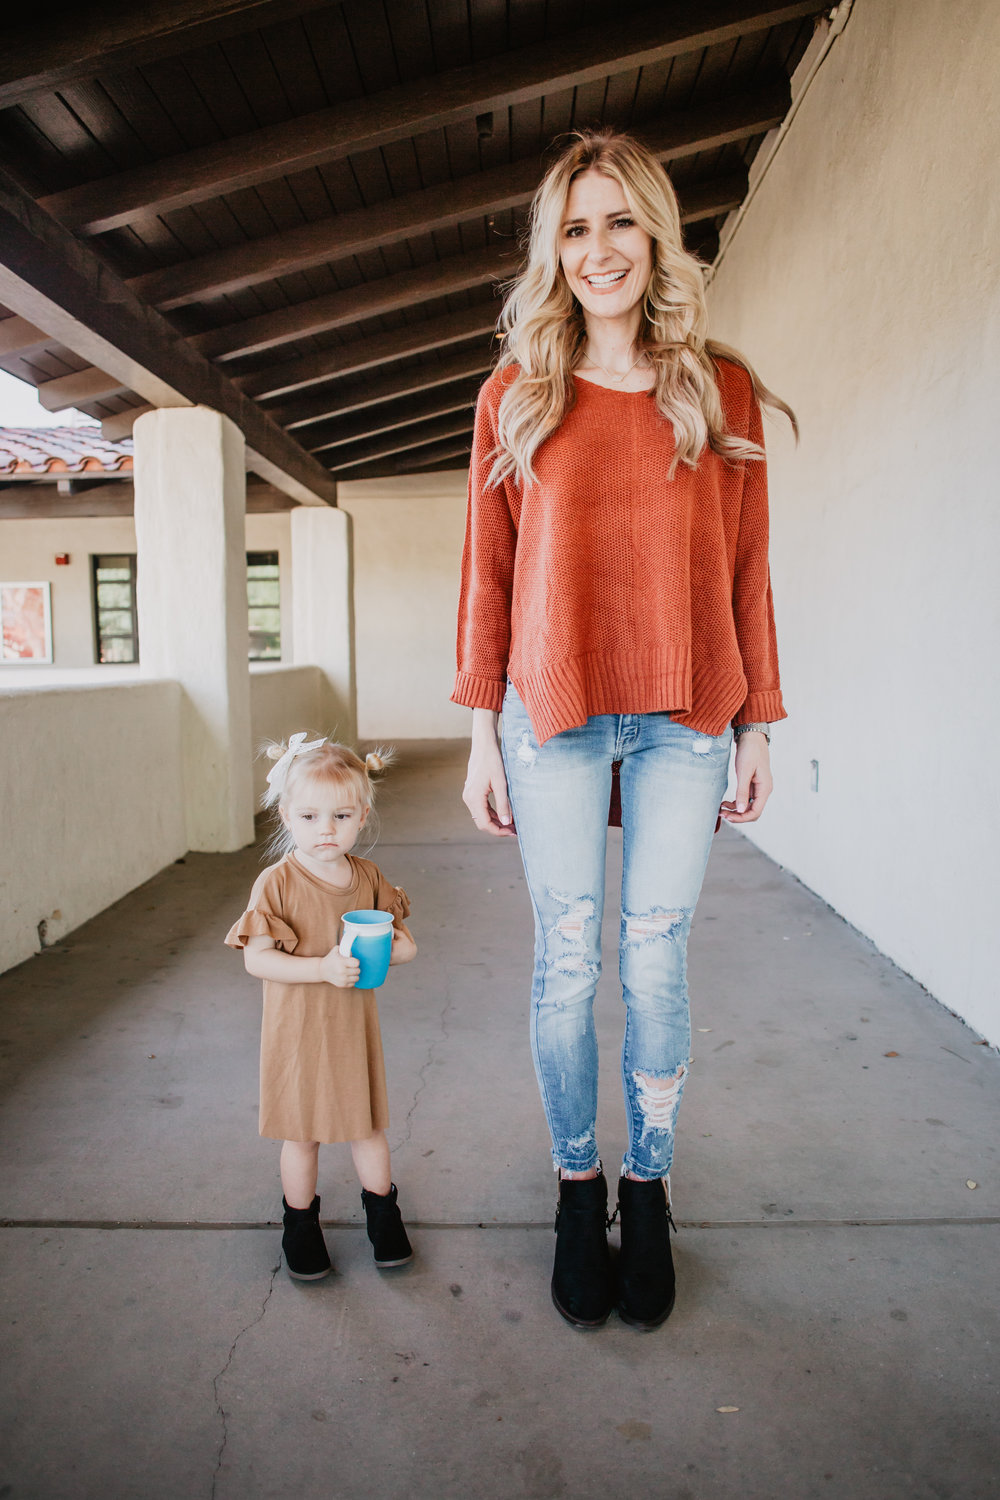 Cute Kids Clothes - Kids T-Shirt Dress - Burnt Orange Knit Sweater Womens -- Mommy Blog - The Overwhelmed Mommy